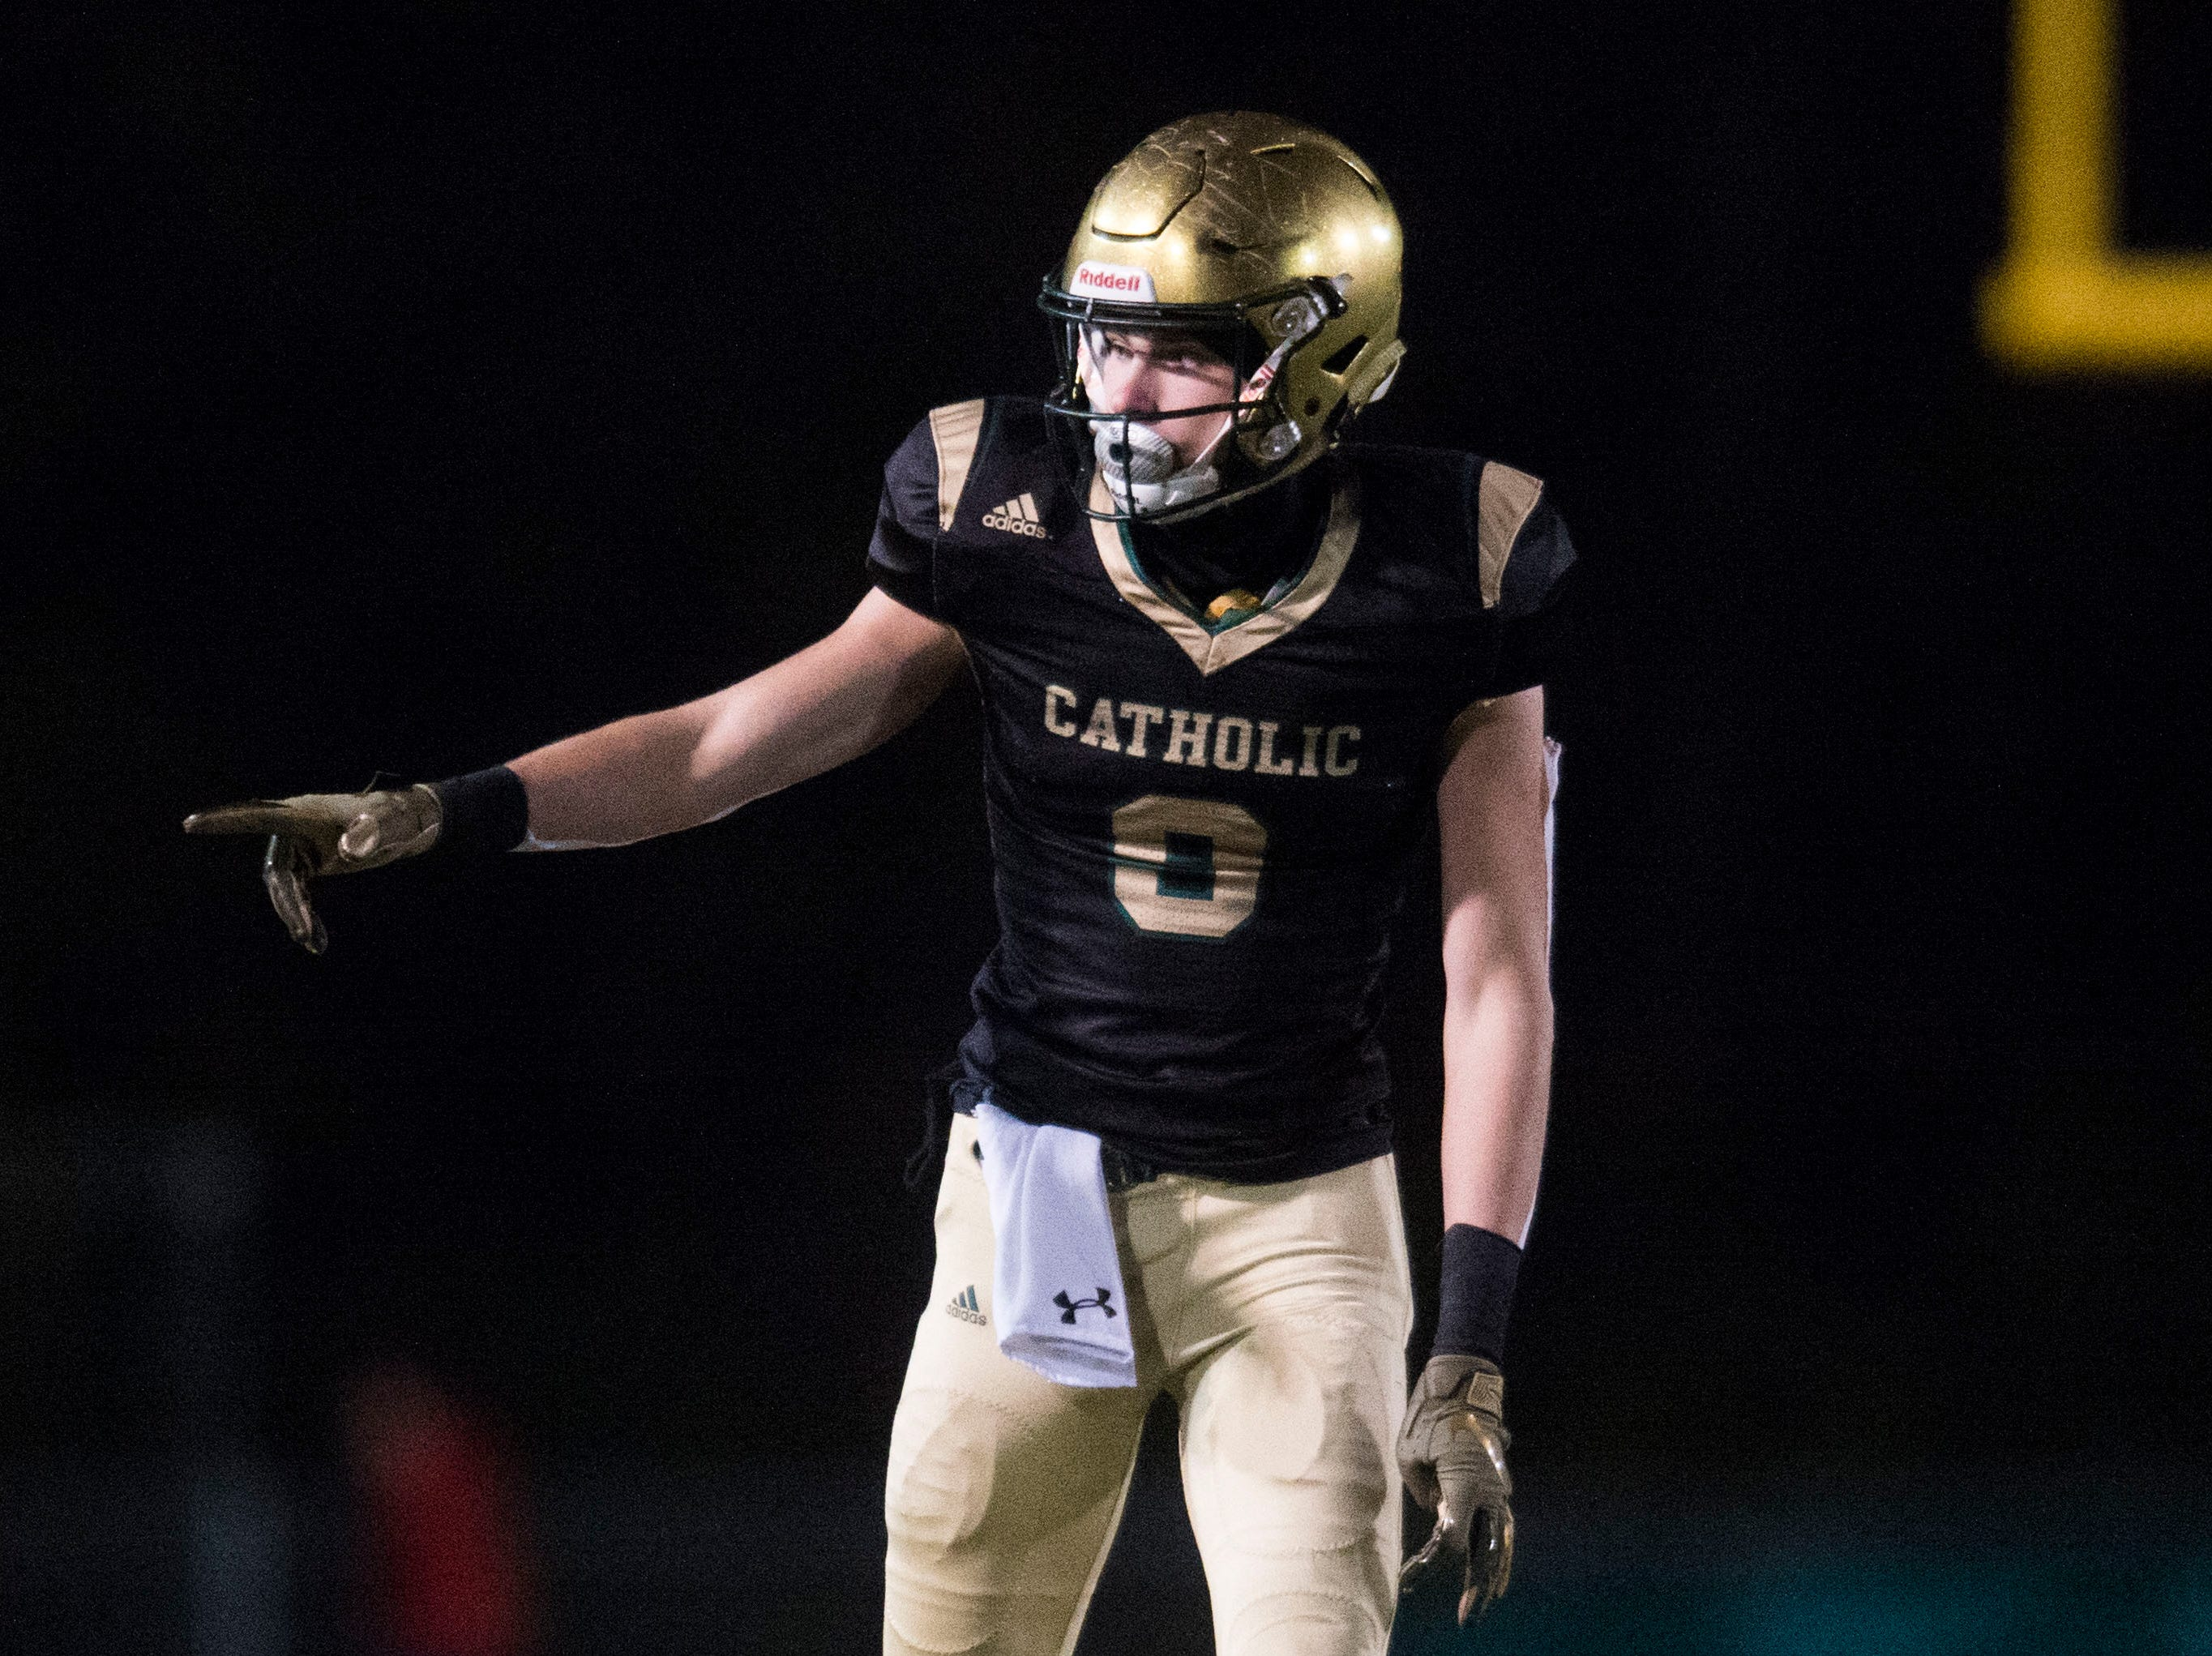 Catholic's Adam Jones (9) points to an official during a Class 5A semifinal game between Central at Catholic Friday, Nov. 23, 2018. Central defeated Catholic 24-19.